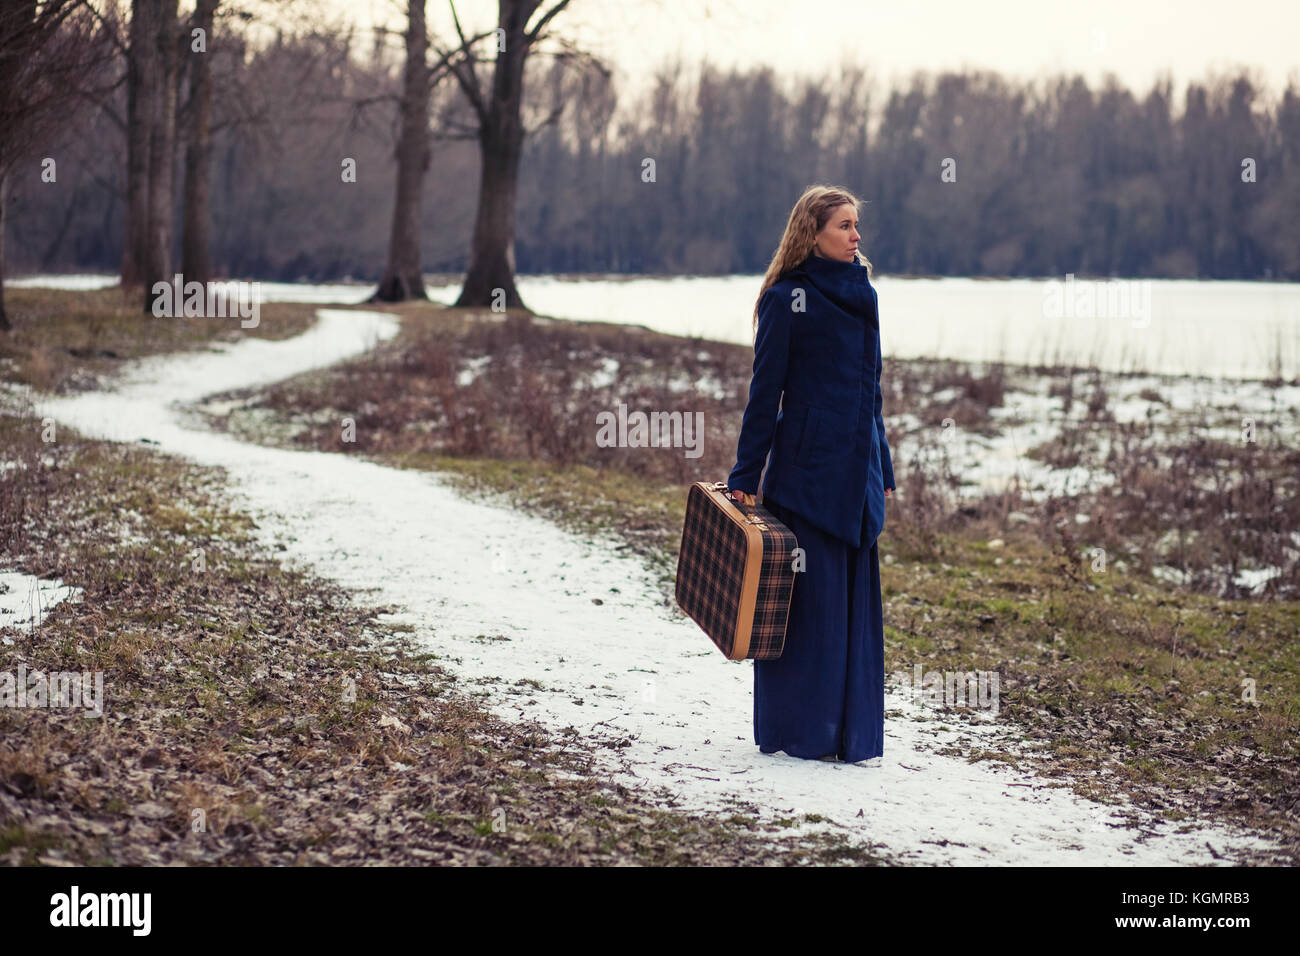 Woman walking in forest with old suitcase - Stock Image